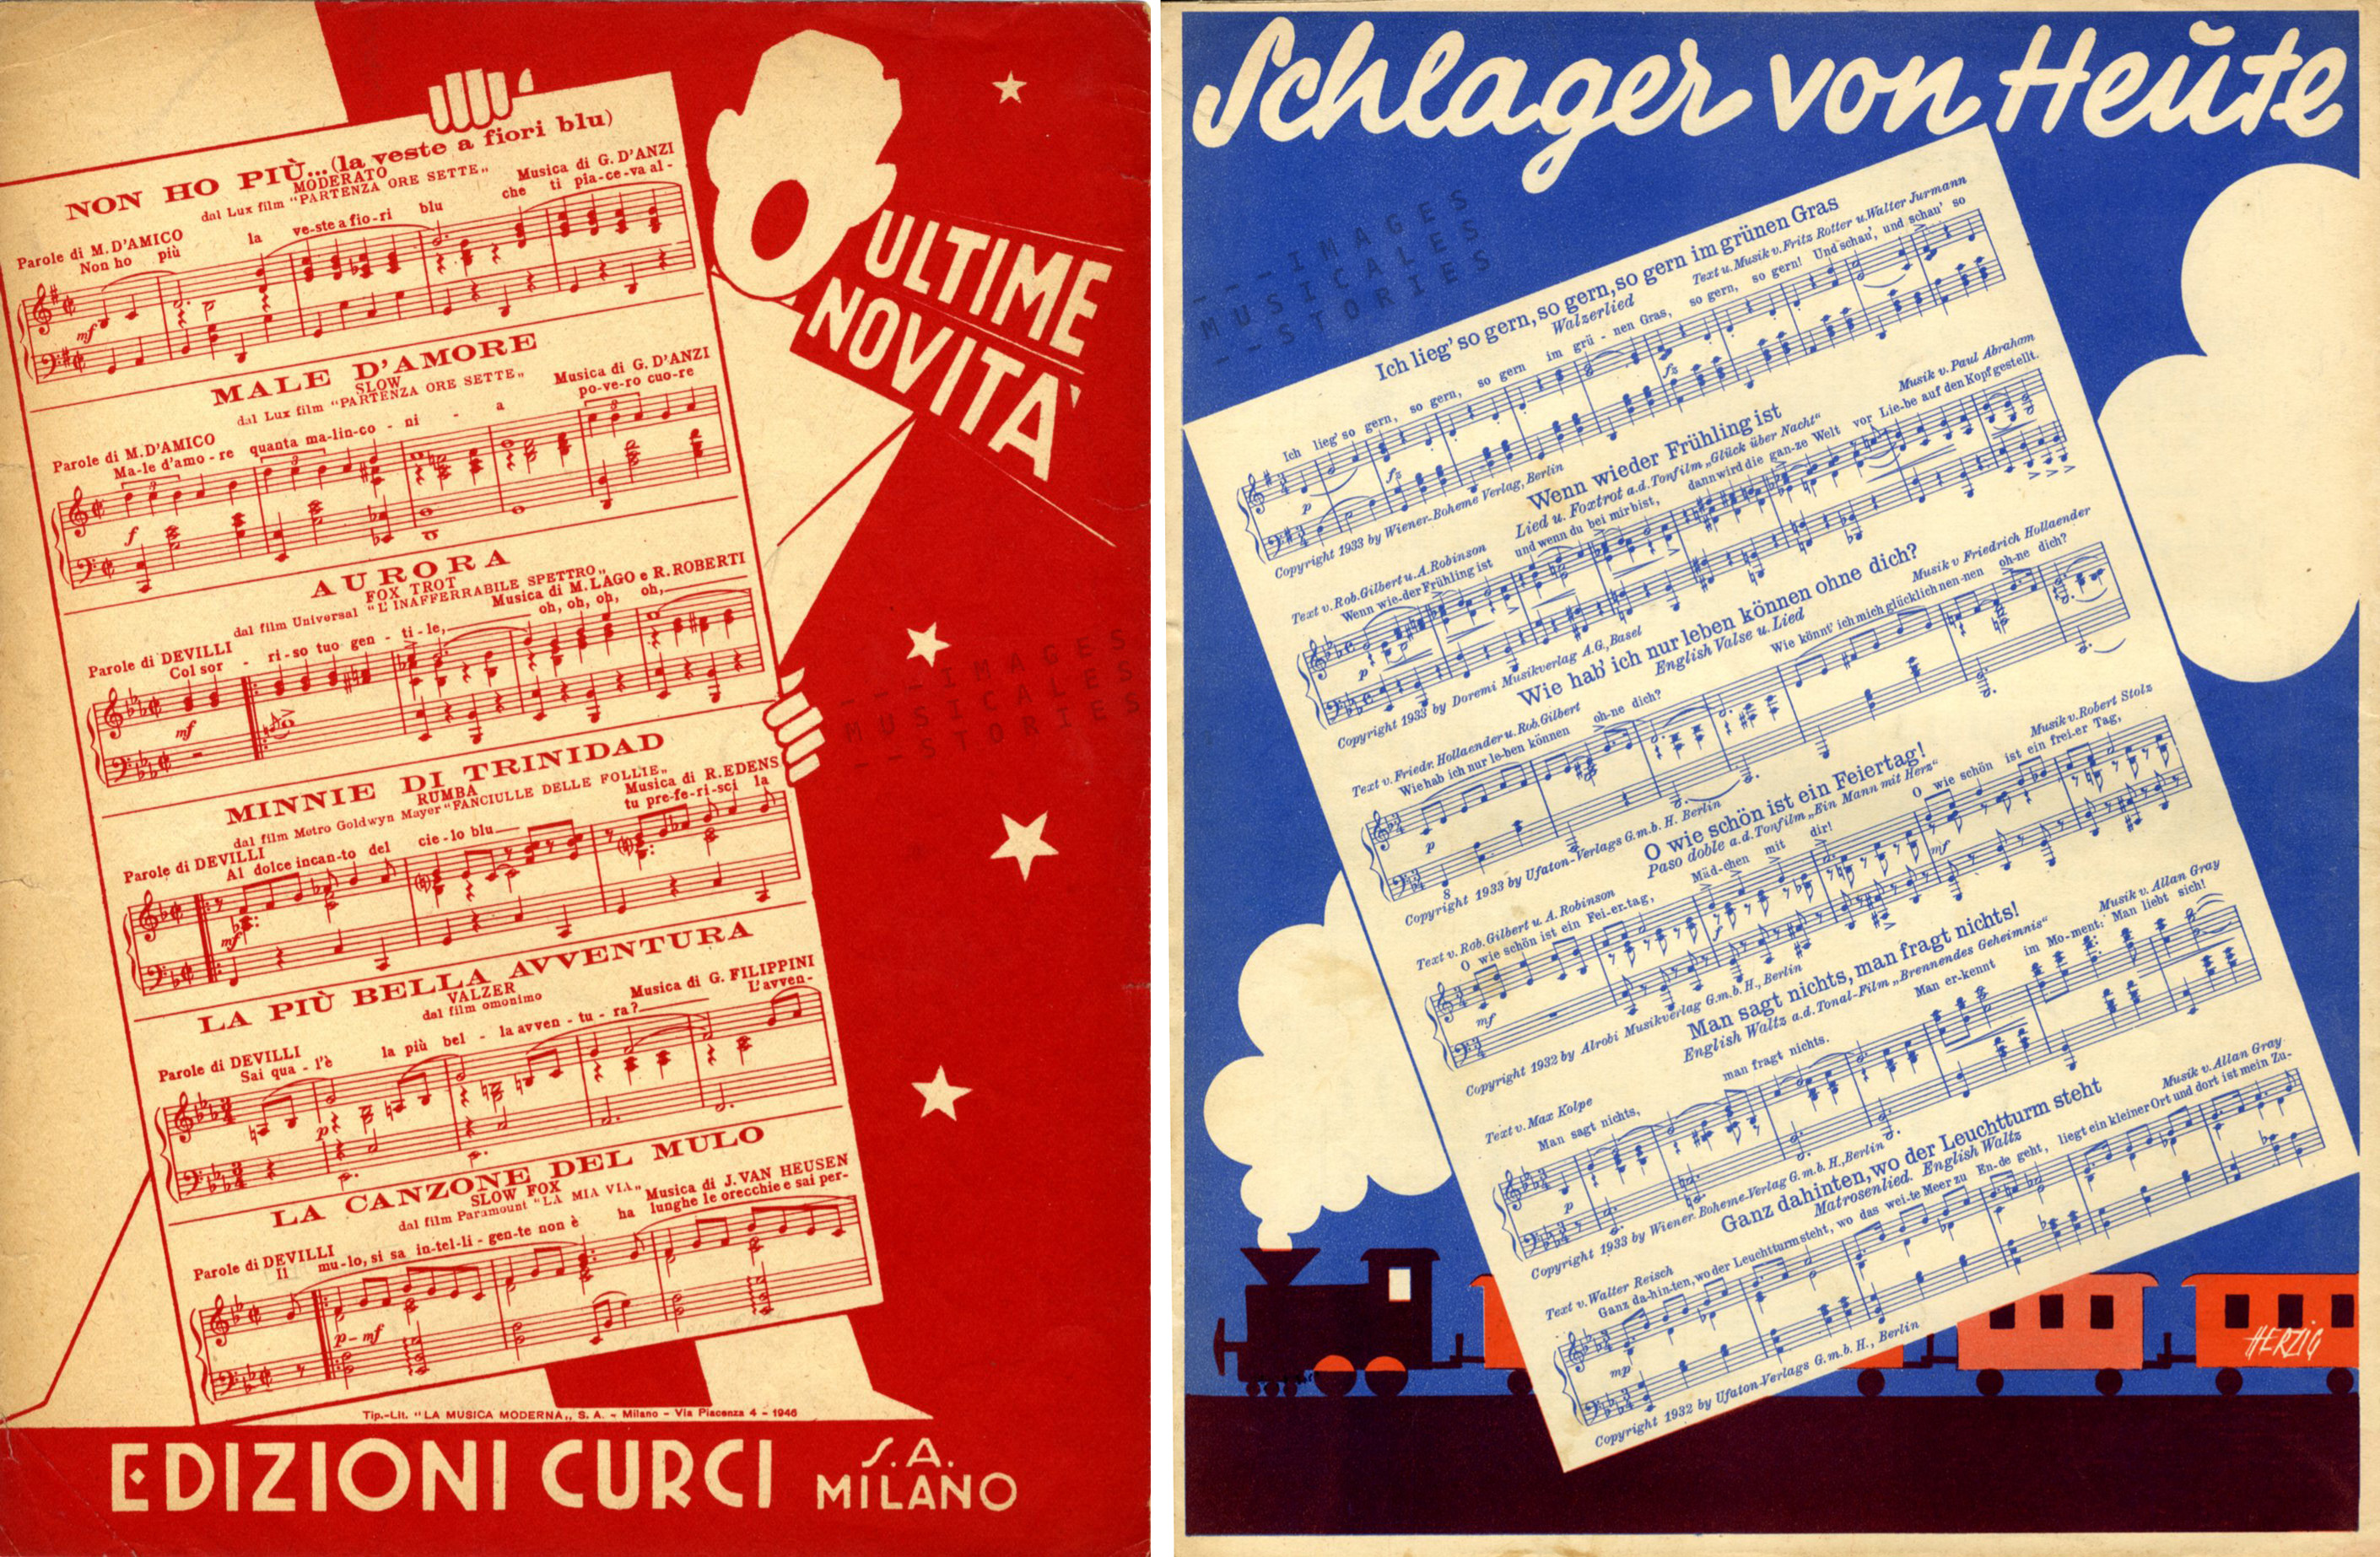 Two similar announcements on the back covers of Edizioni Curci (on the left, unknown illustrator) and UFATON Verlag (right, illustrated by Herzig, s.d.).